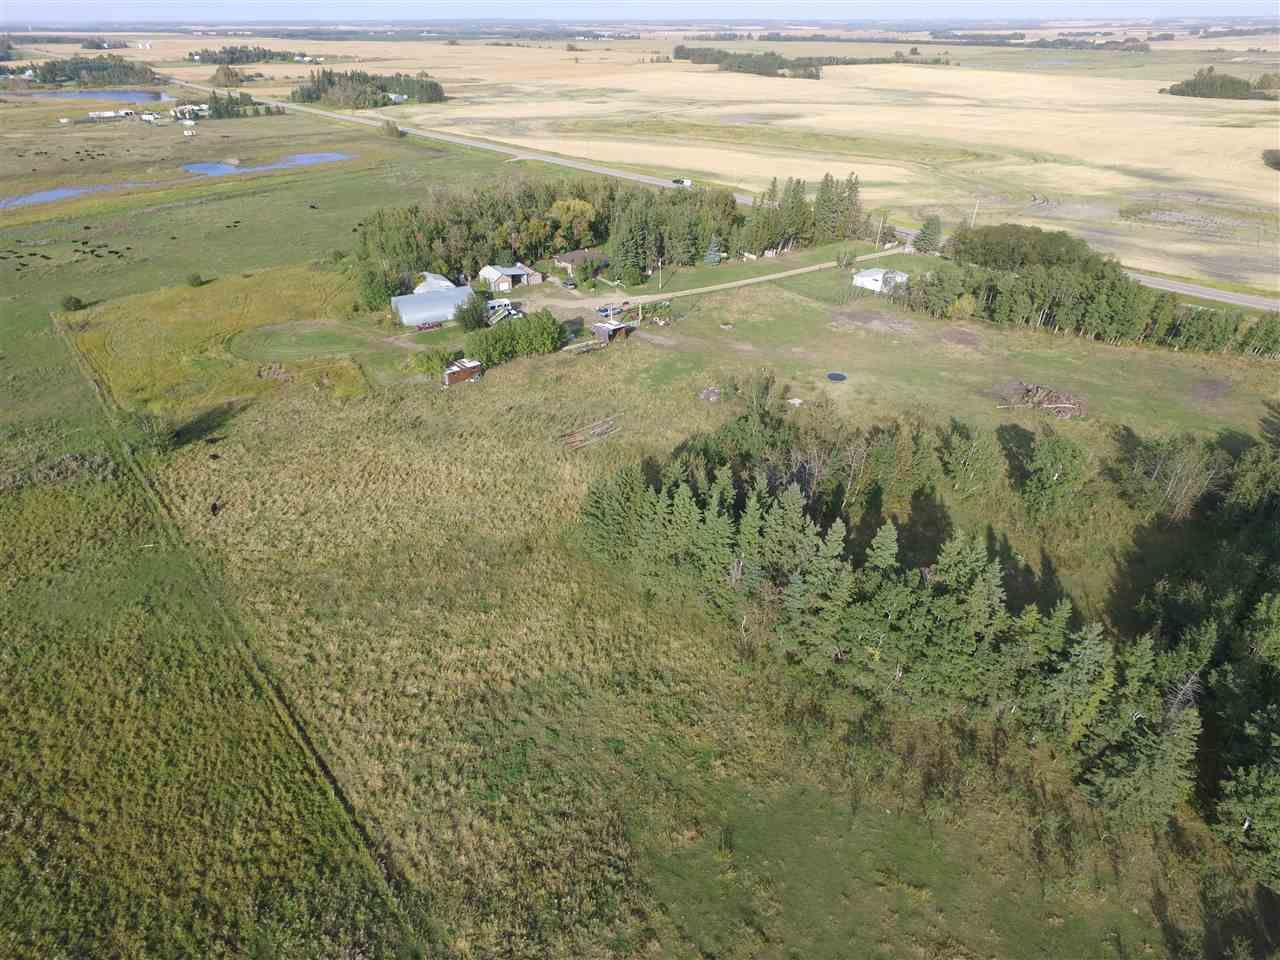 Photo 23: Photos: 472050A Hwy 814: Rural Wetaskiwin County House for sale : MLS®# E4213442